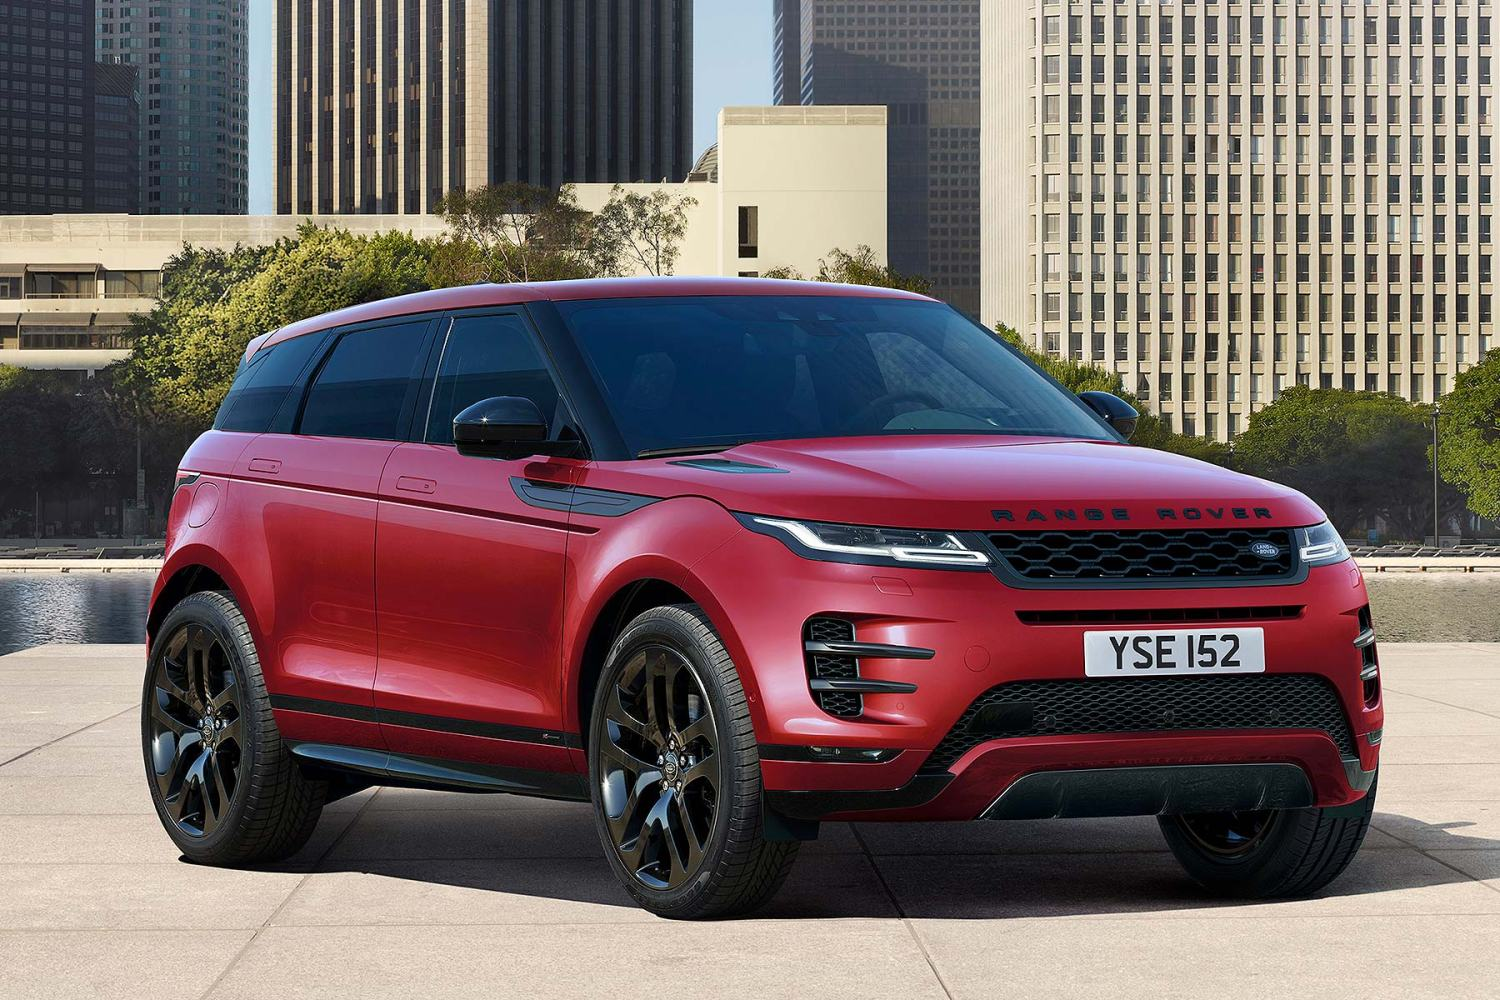 New Range Rover >> New 2019 Range Rover Evoque Prices And Specs Revealed